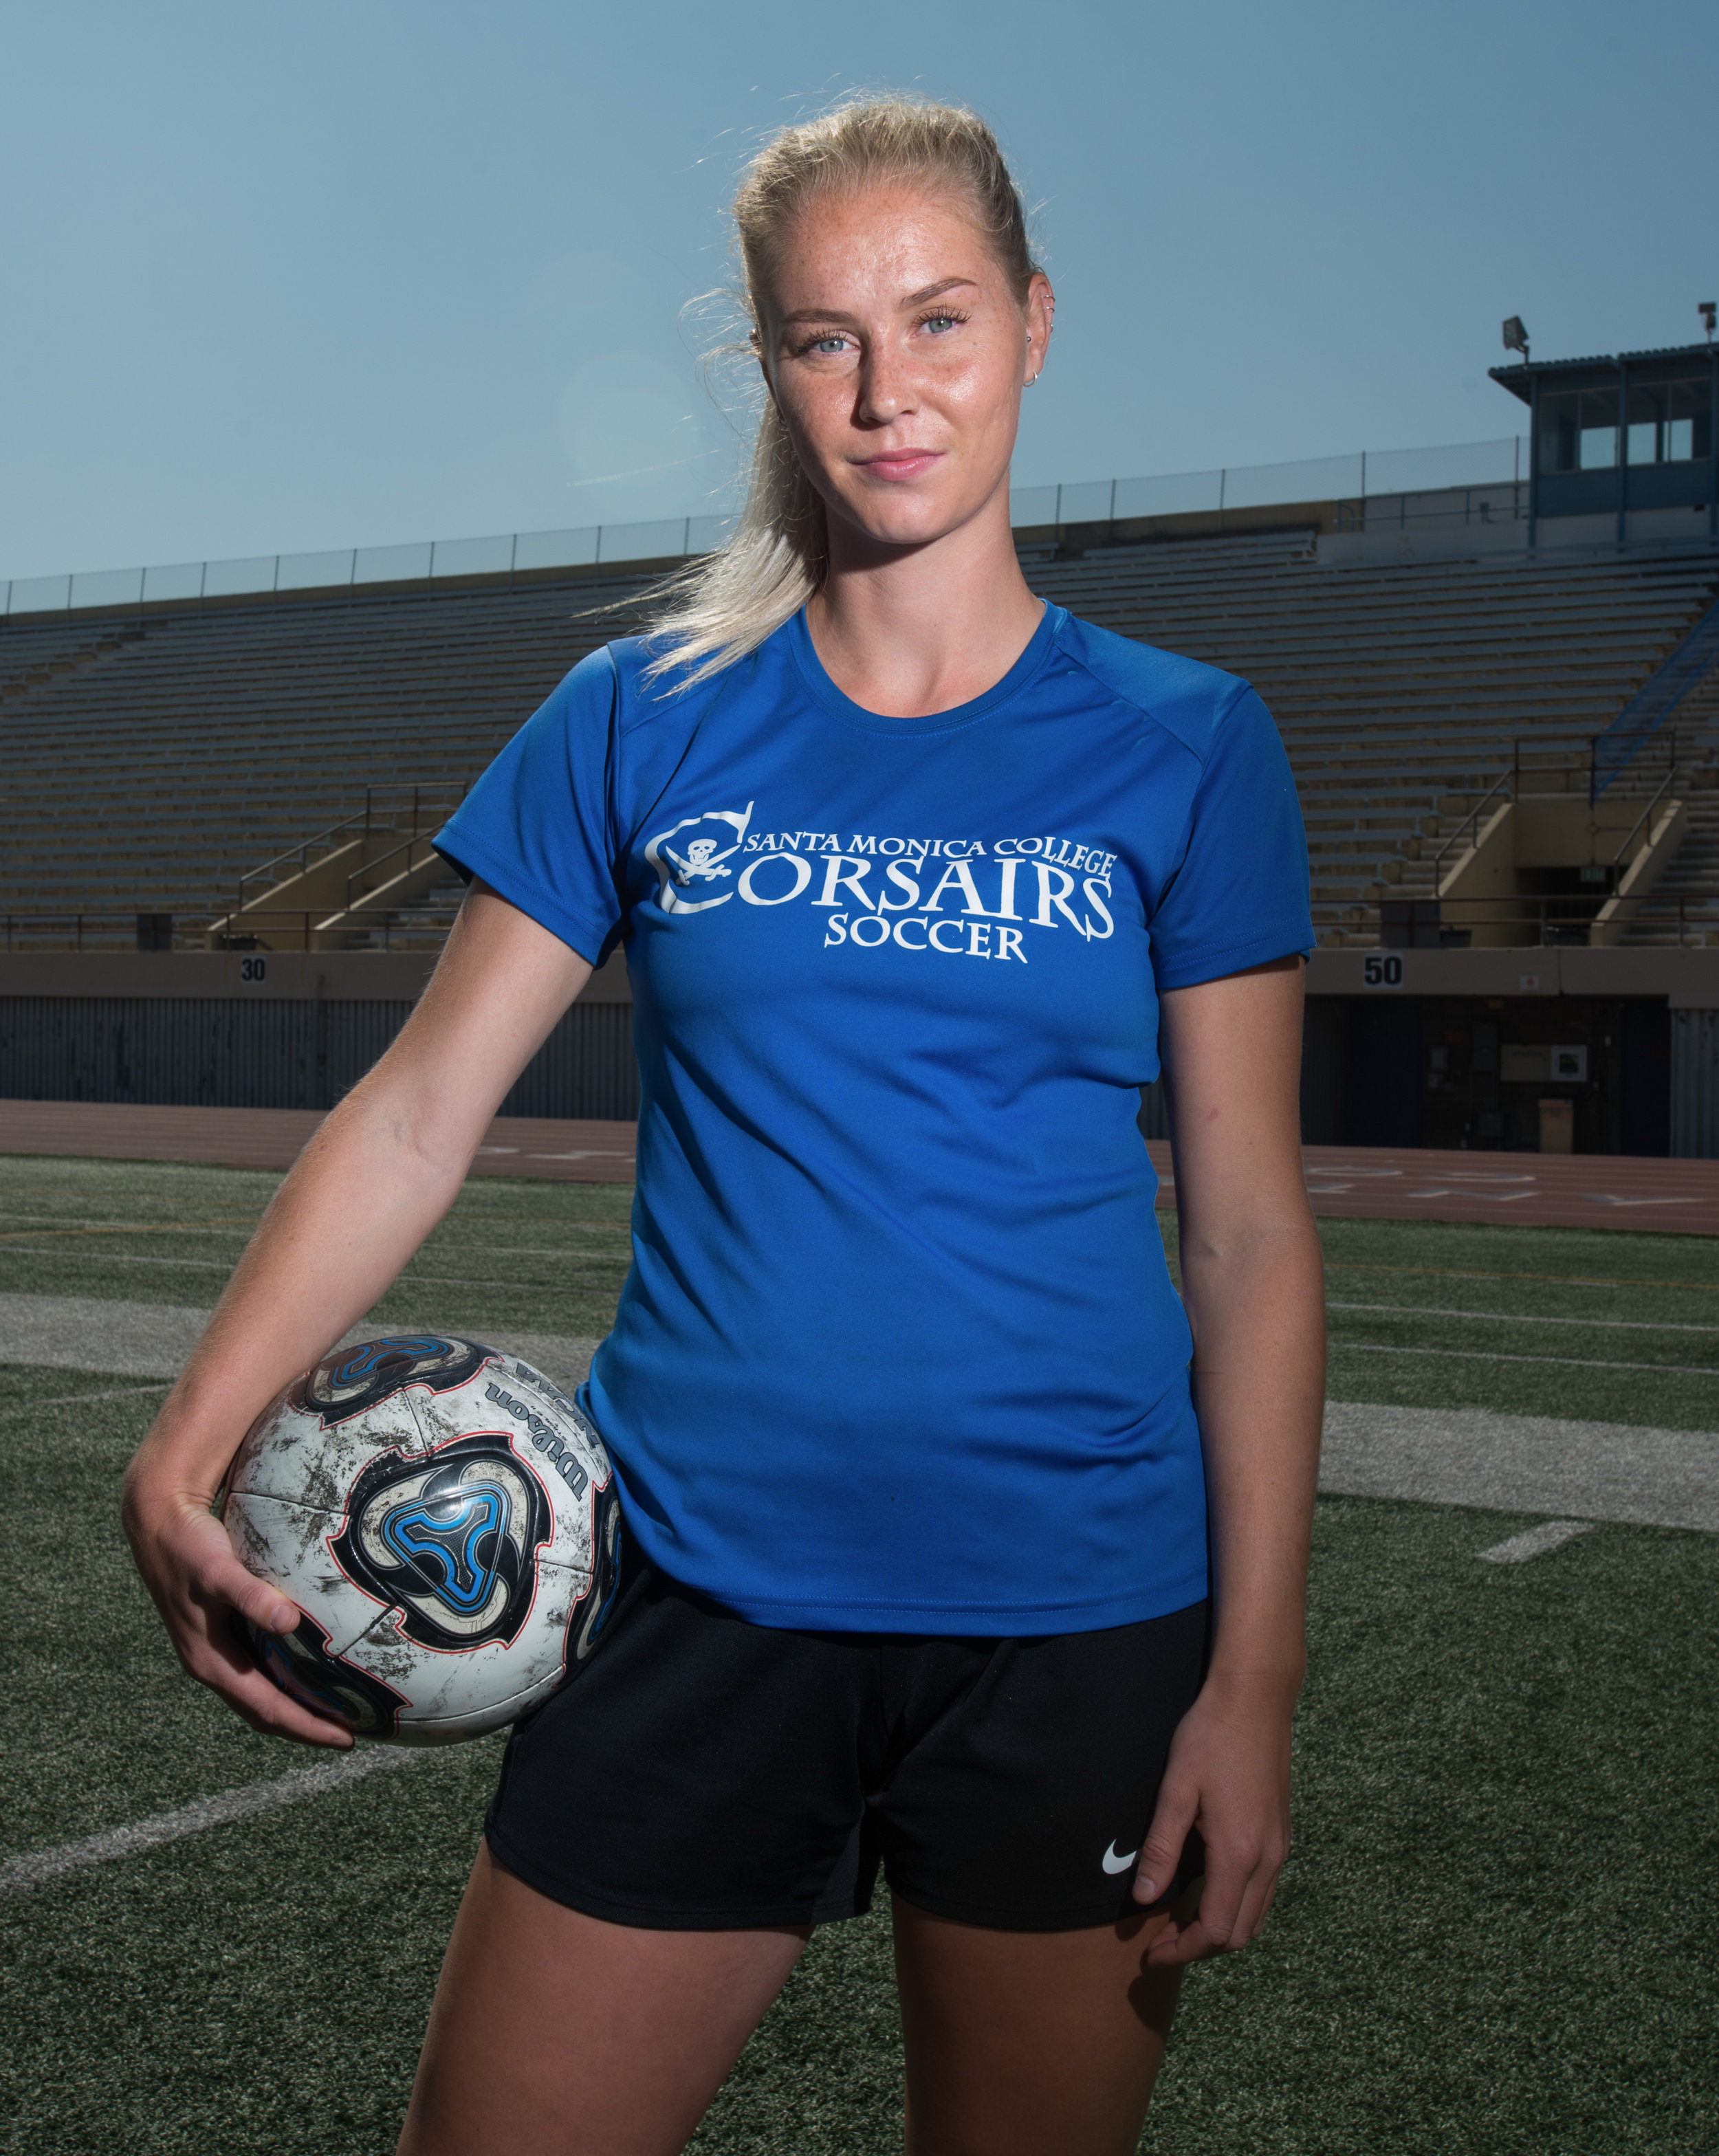 Santa Monica College Corsair Forwards Filippa Struxsjo poses for a portrait at the Corsair Field in Santa Monica, California on October 13, 2017.  Filippa is an international student from Sweden and is currently among the top scorers in the team with 8 goals this season. (Josue Martinez)